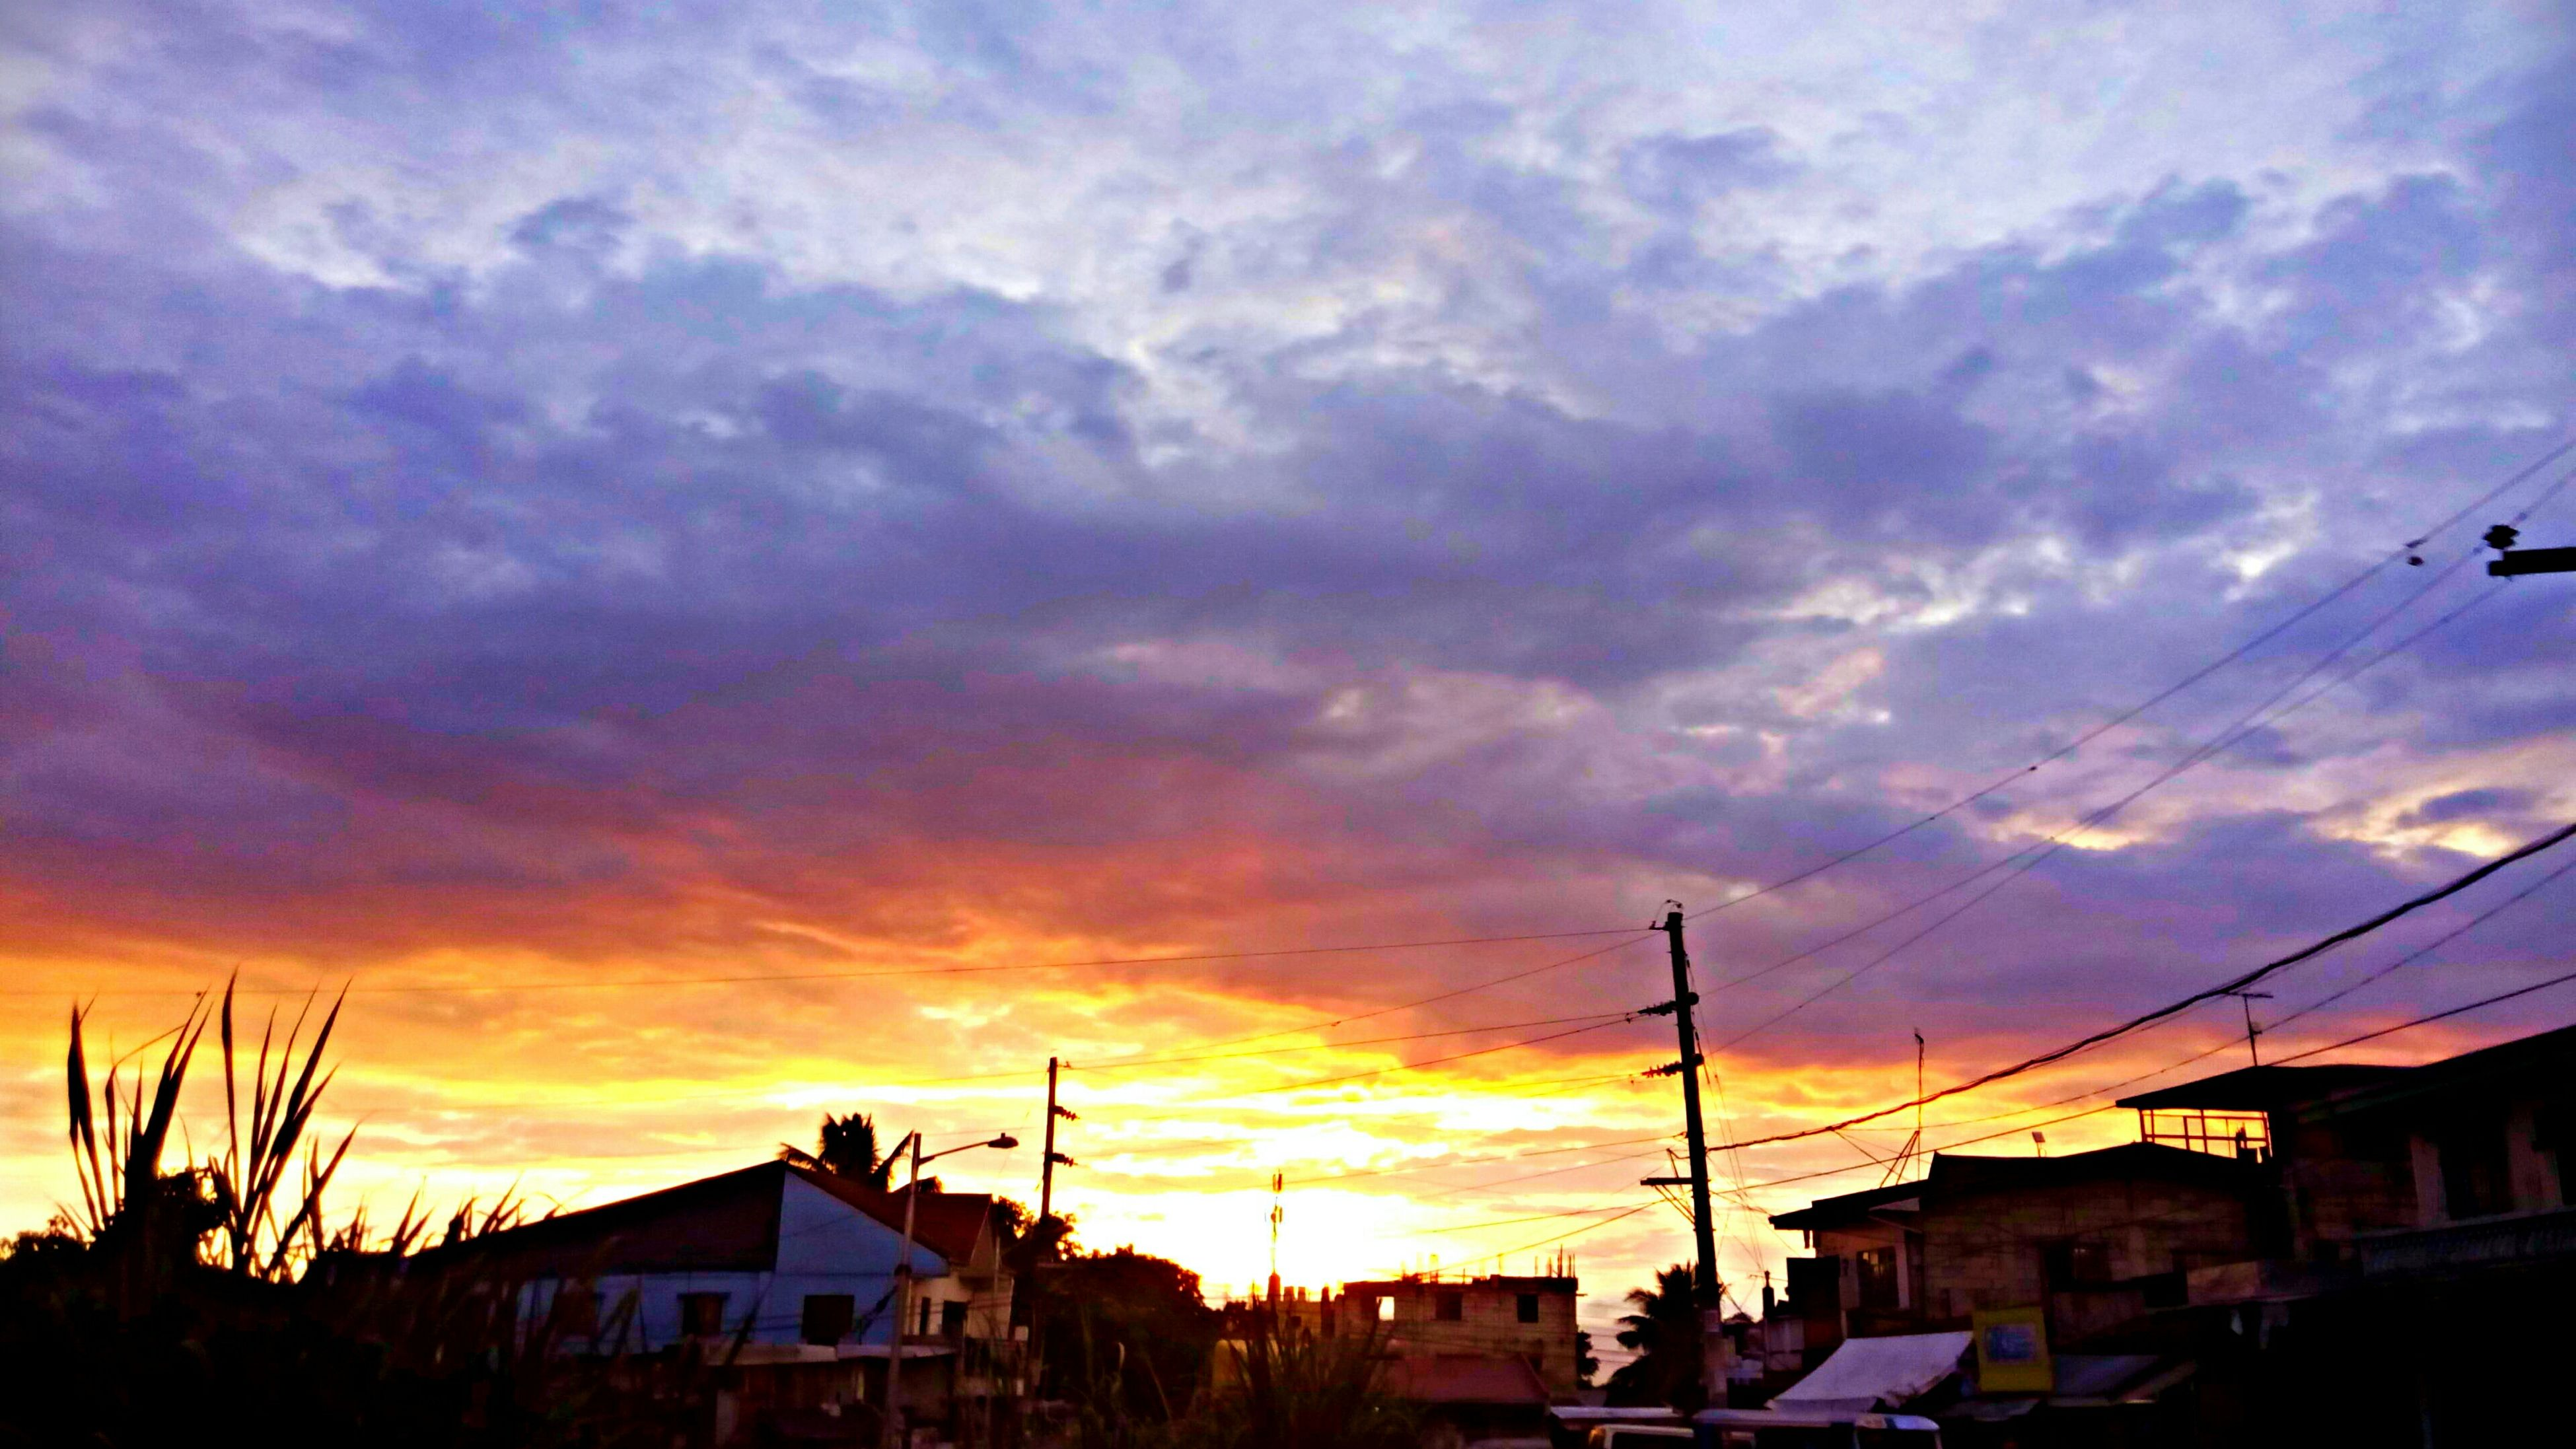 building exterior, architecture, sunset, built structure, sky, cloud - sky, house, residential structure, cloudy, residential building, cloud, orange color, low angle view, silhouette, city, building, dramatic sky, town, outdoors, residential district